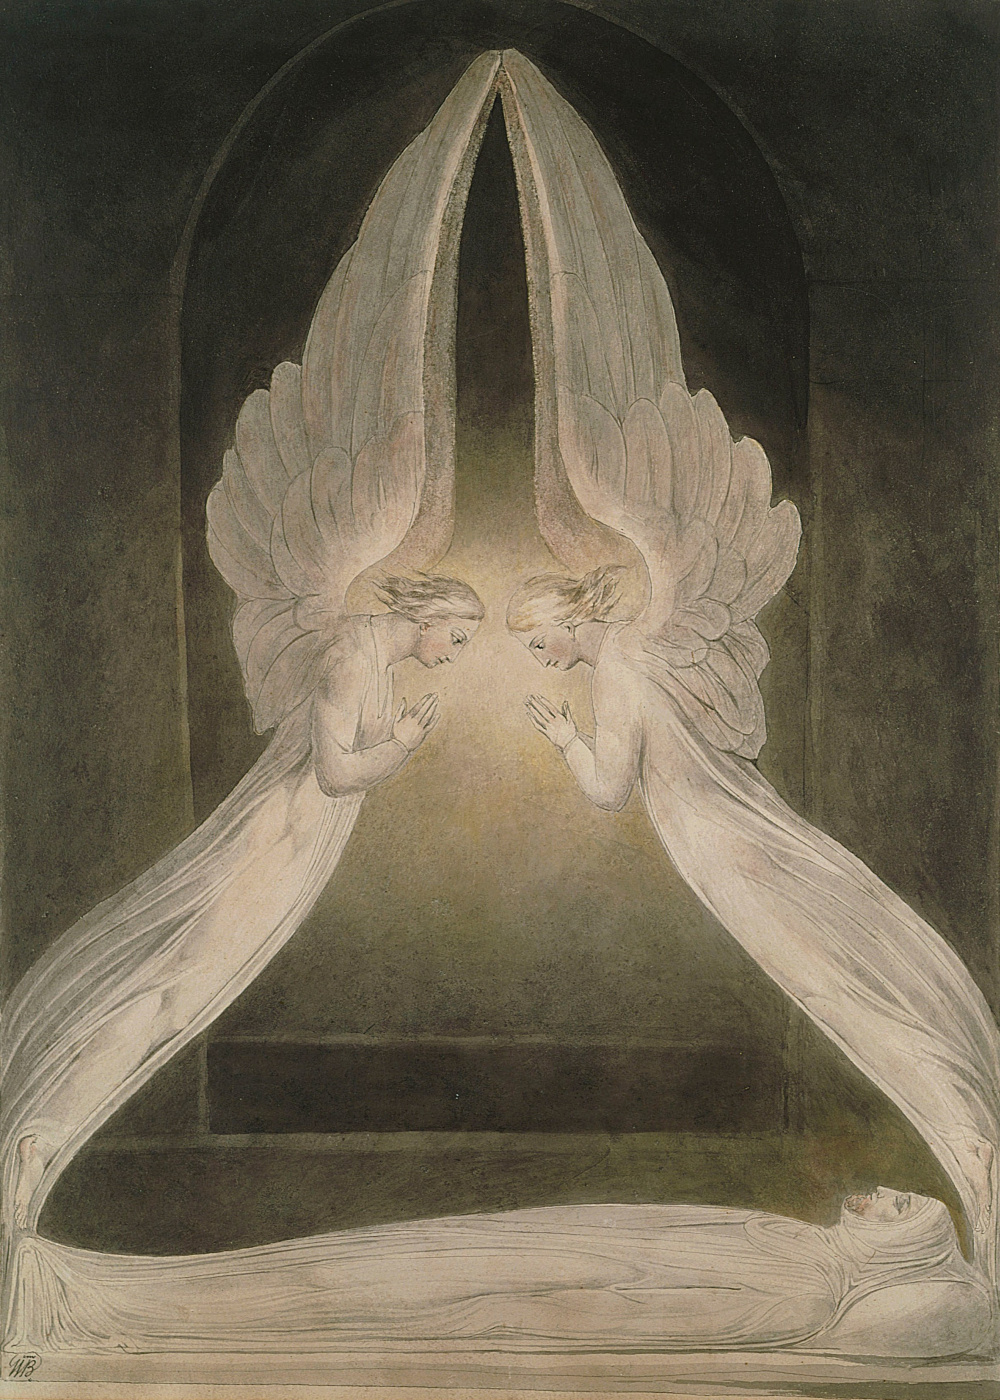 William Blake. Illustrations of the Bible. Christ in the tomb, guarded by angels